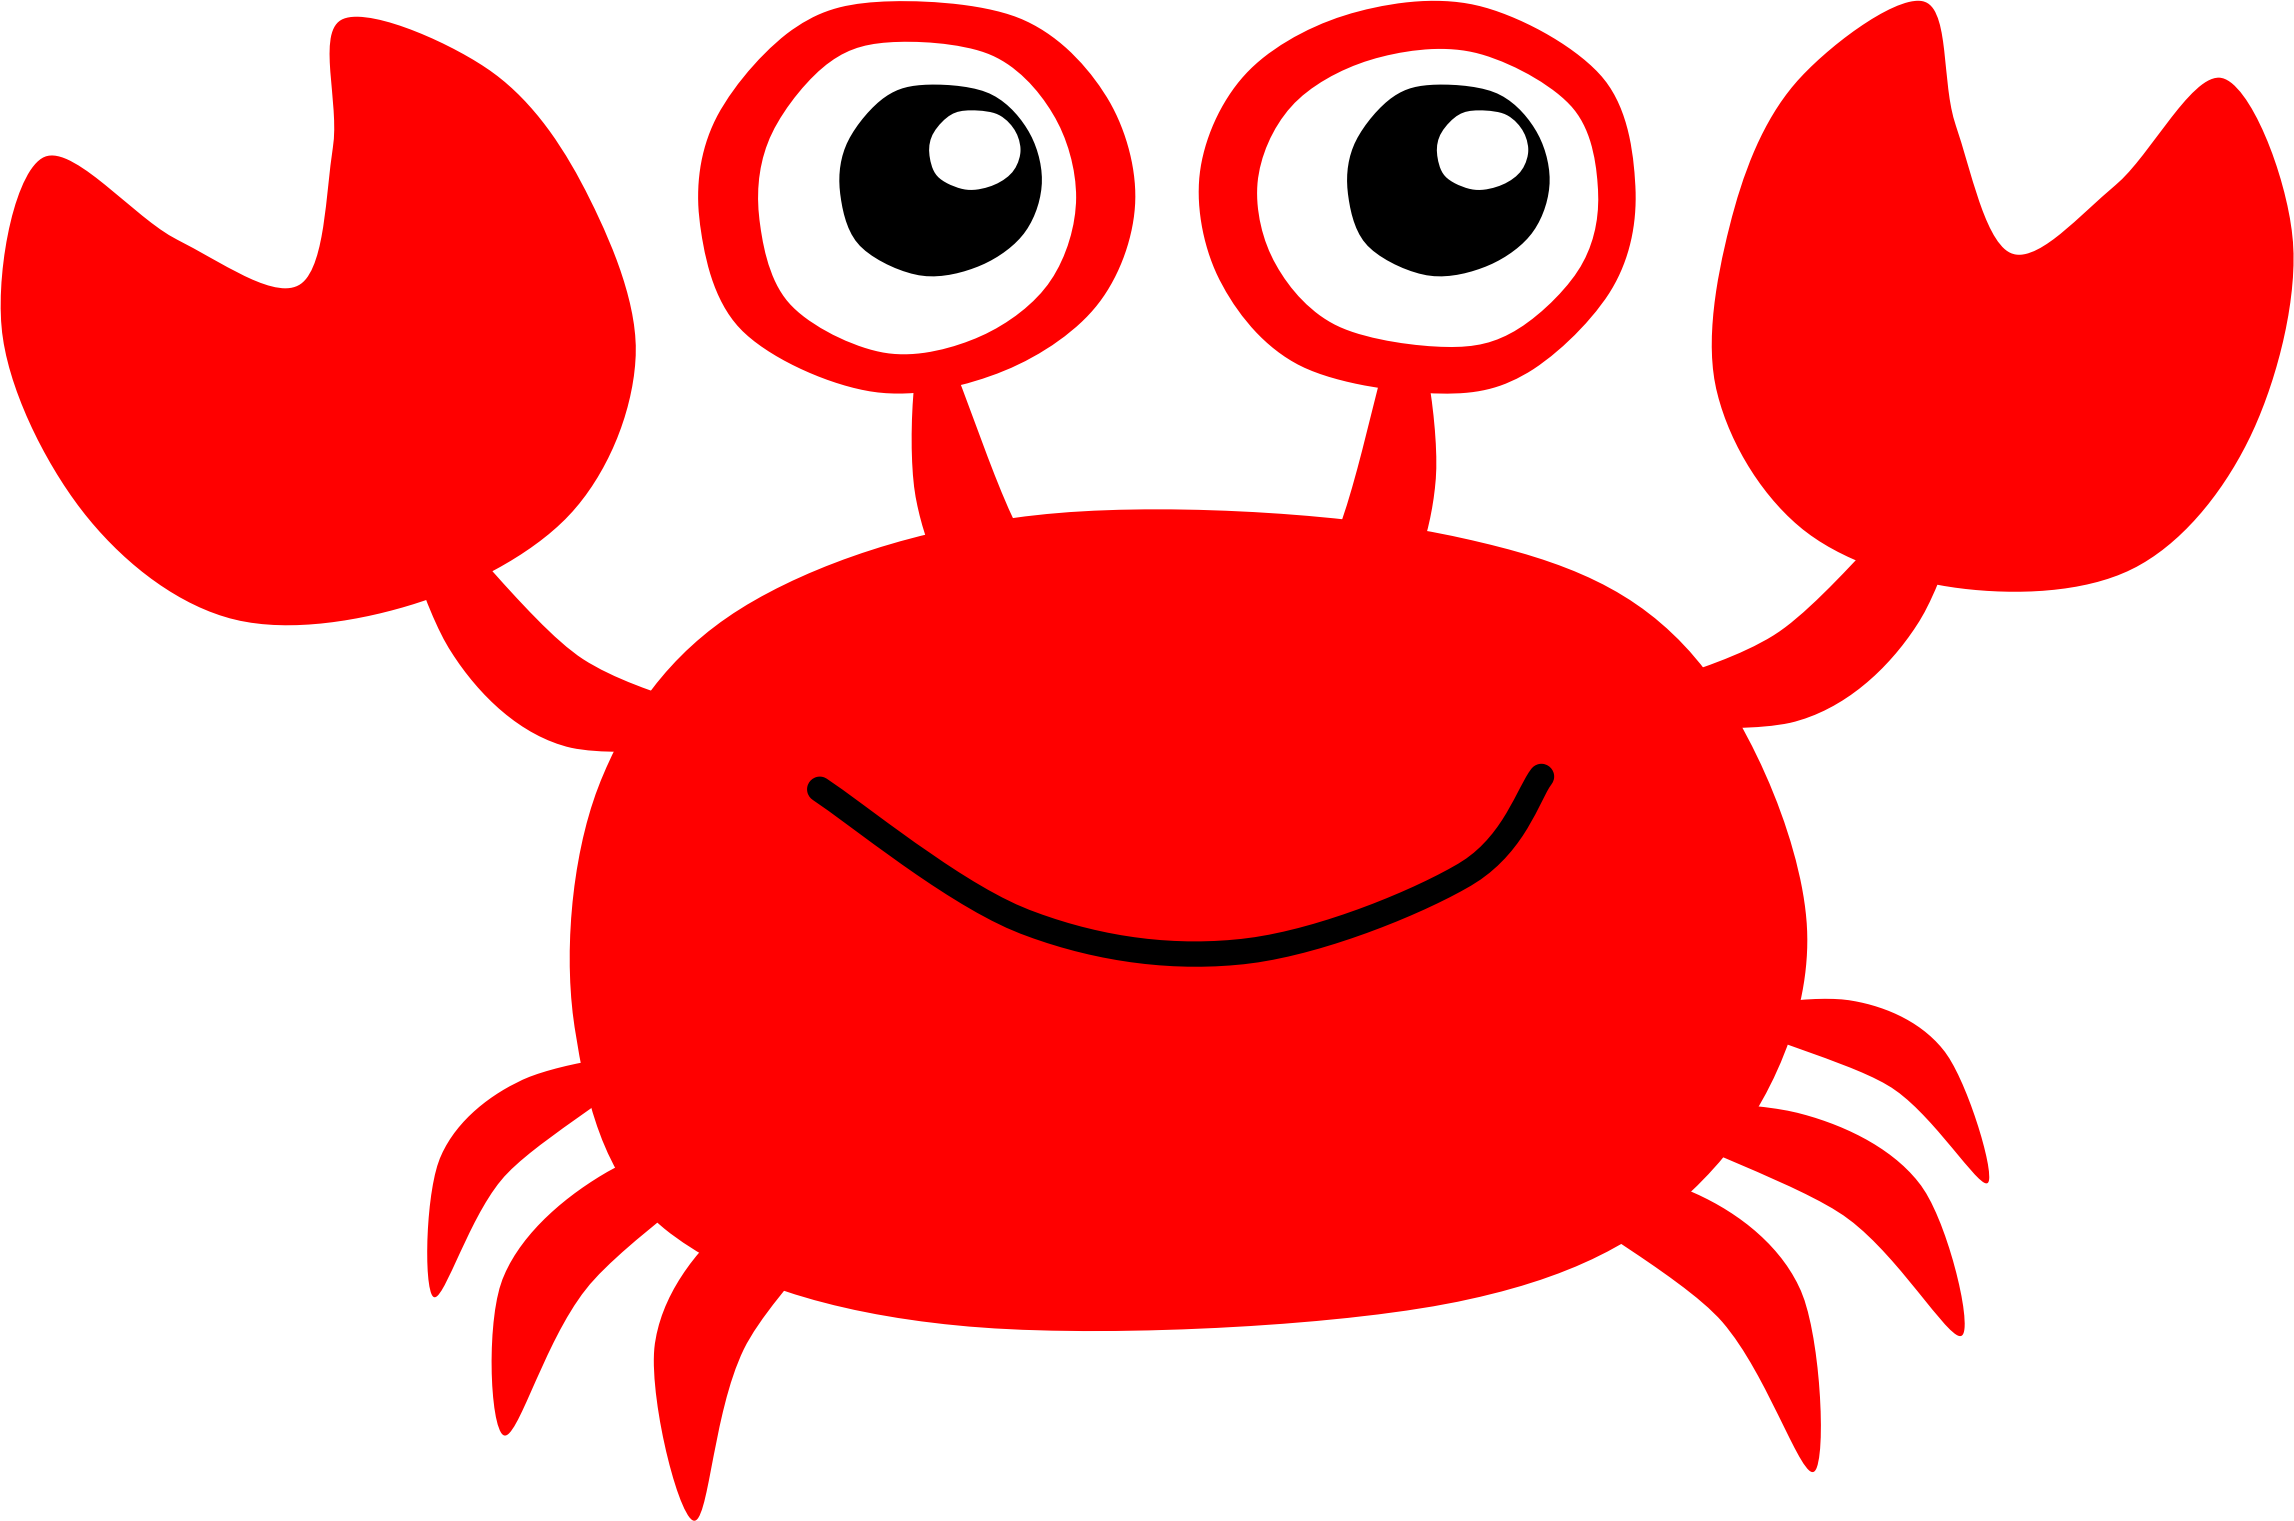 2294x1521 Red Crab By @scout, A Clipart Of Cute Red Crab., On @openclipart